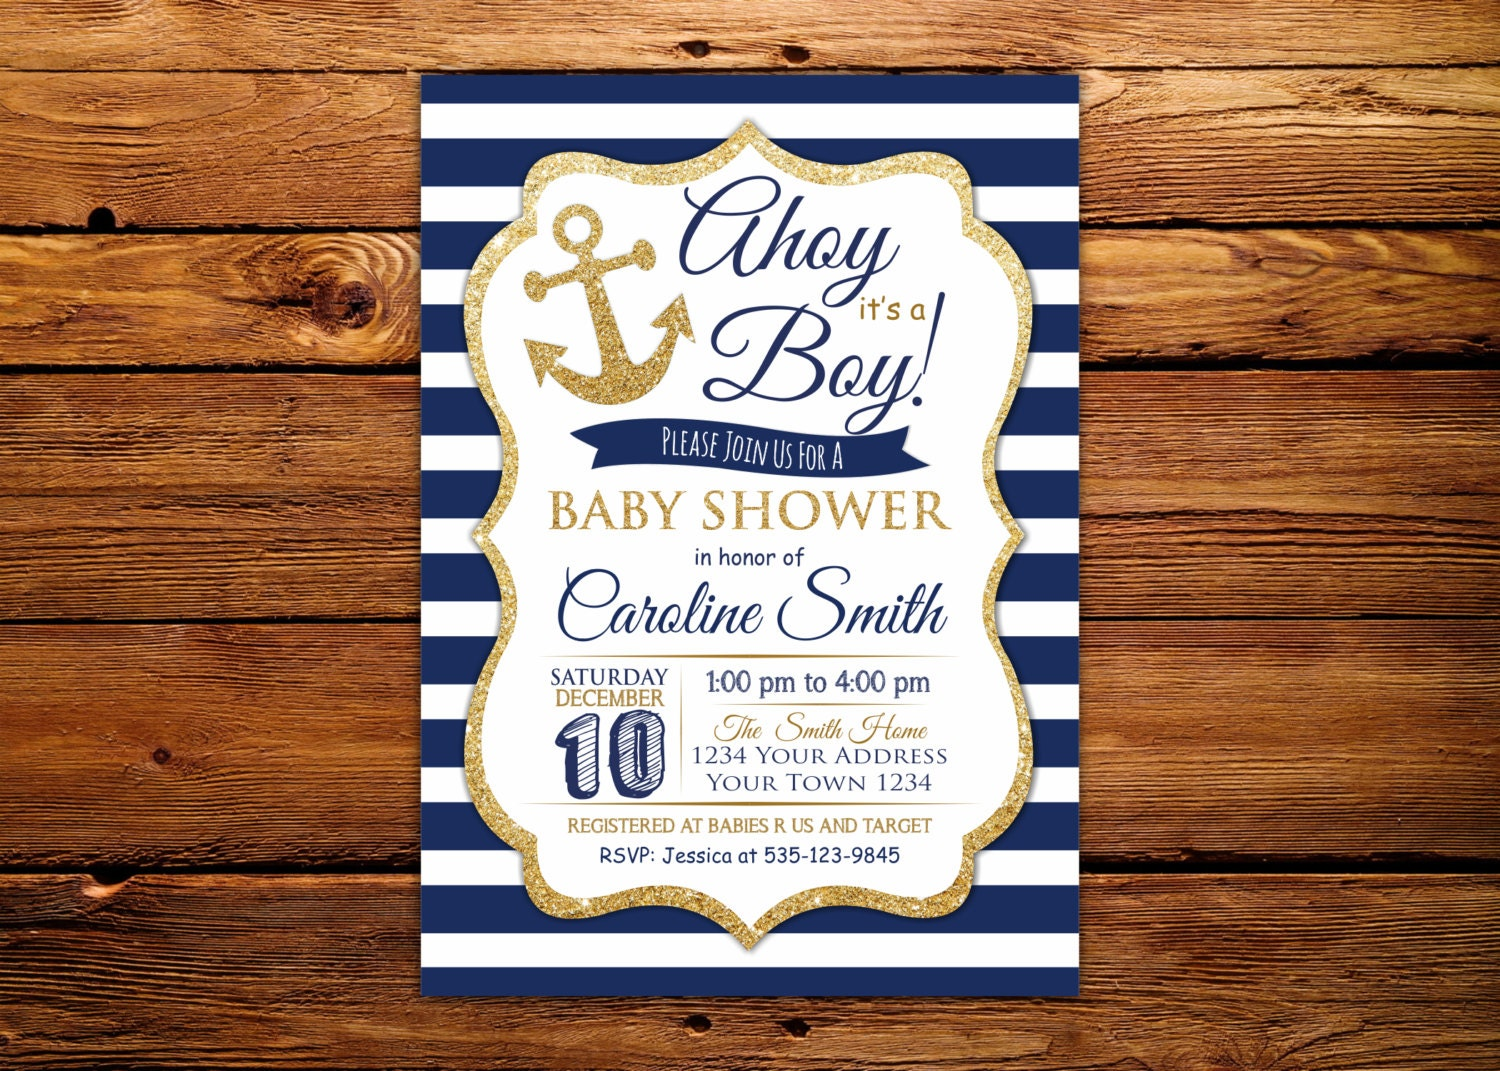 Ahoy Its a Boy Baby Shower Invitation. Nautical Baby Shower